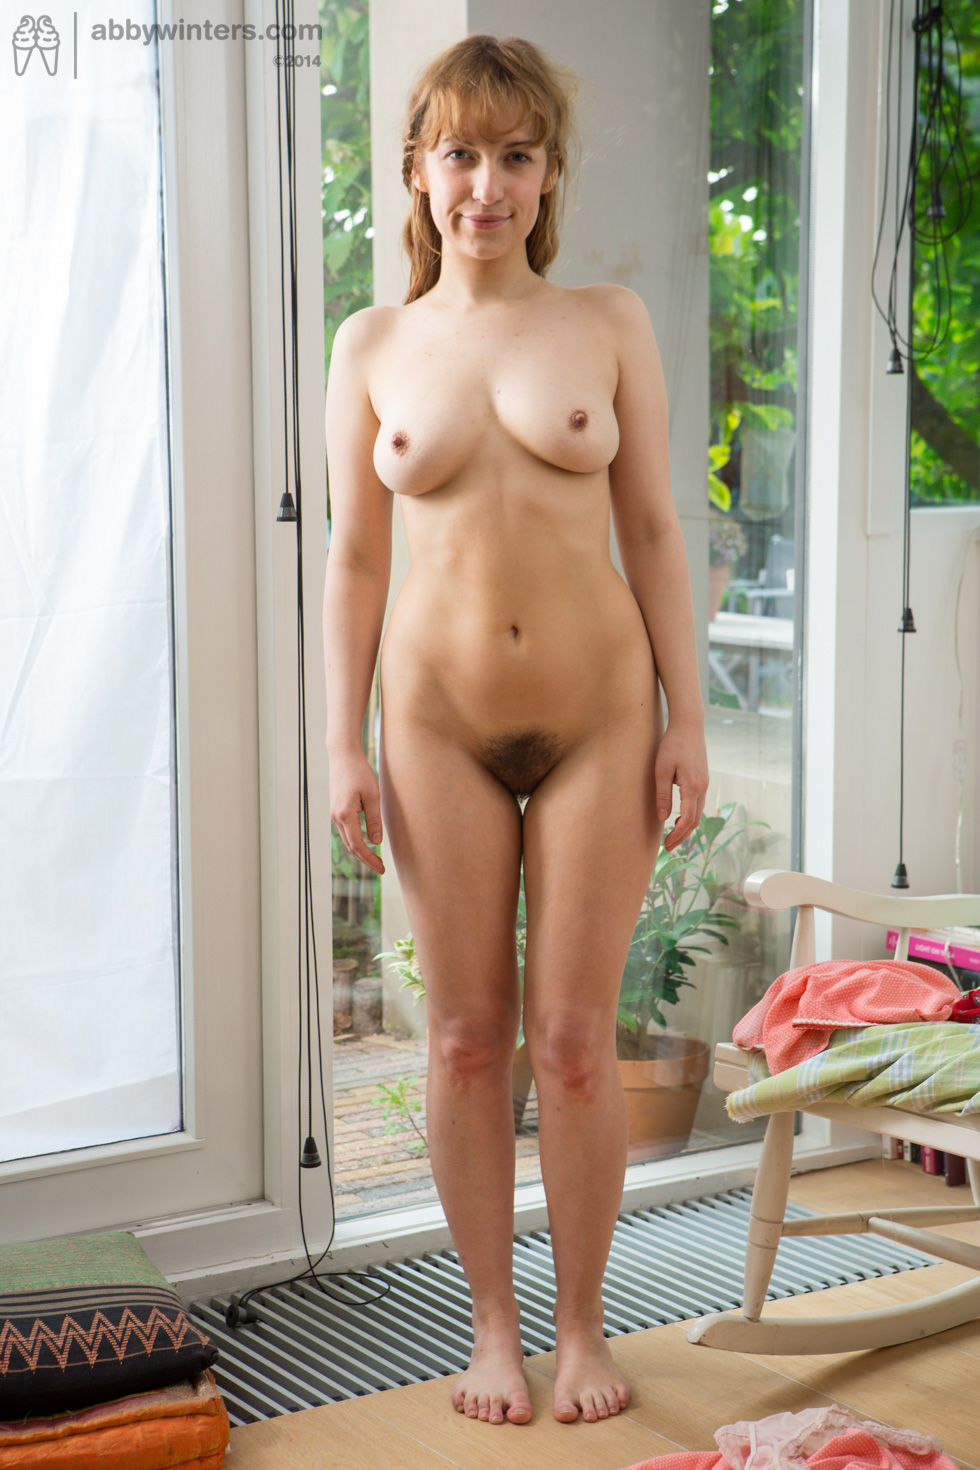 Hairy girl showing off her petite pale body